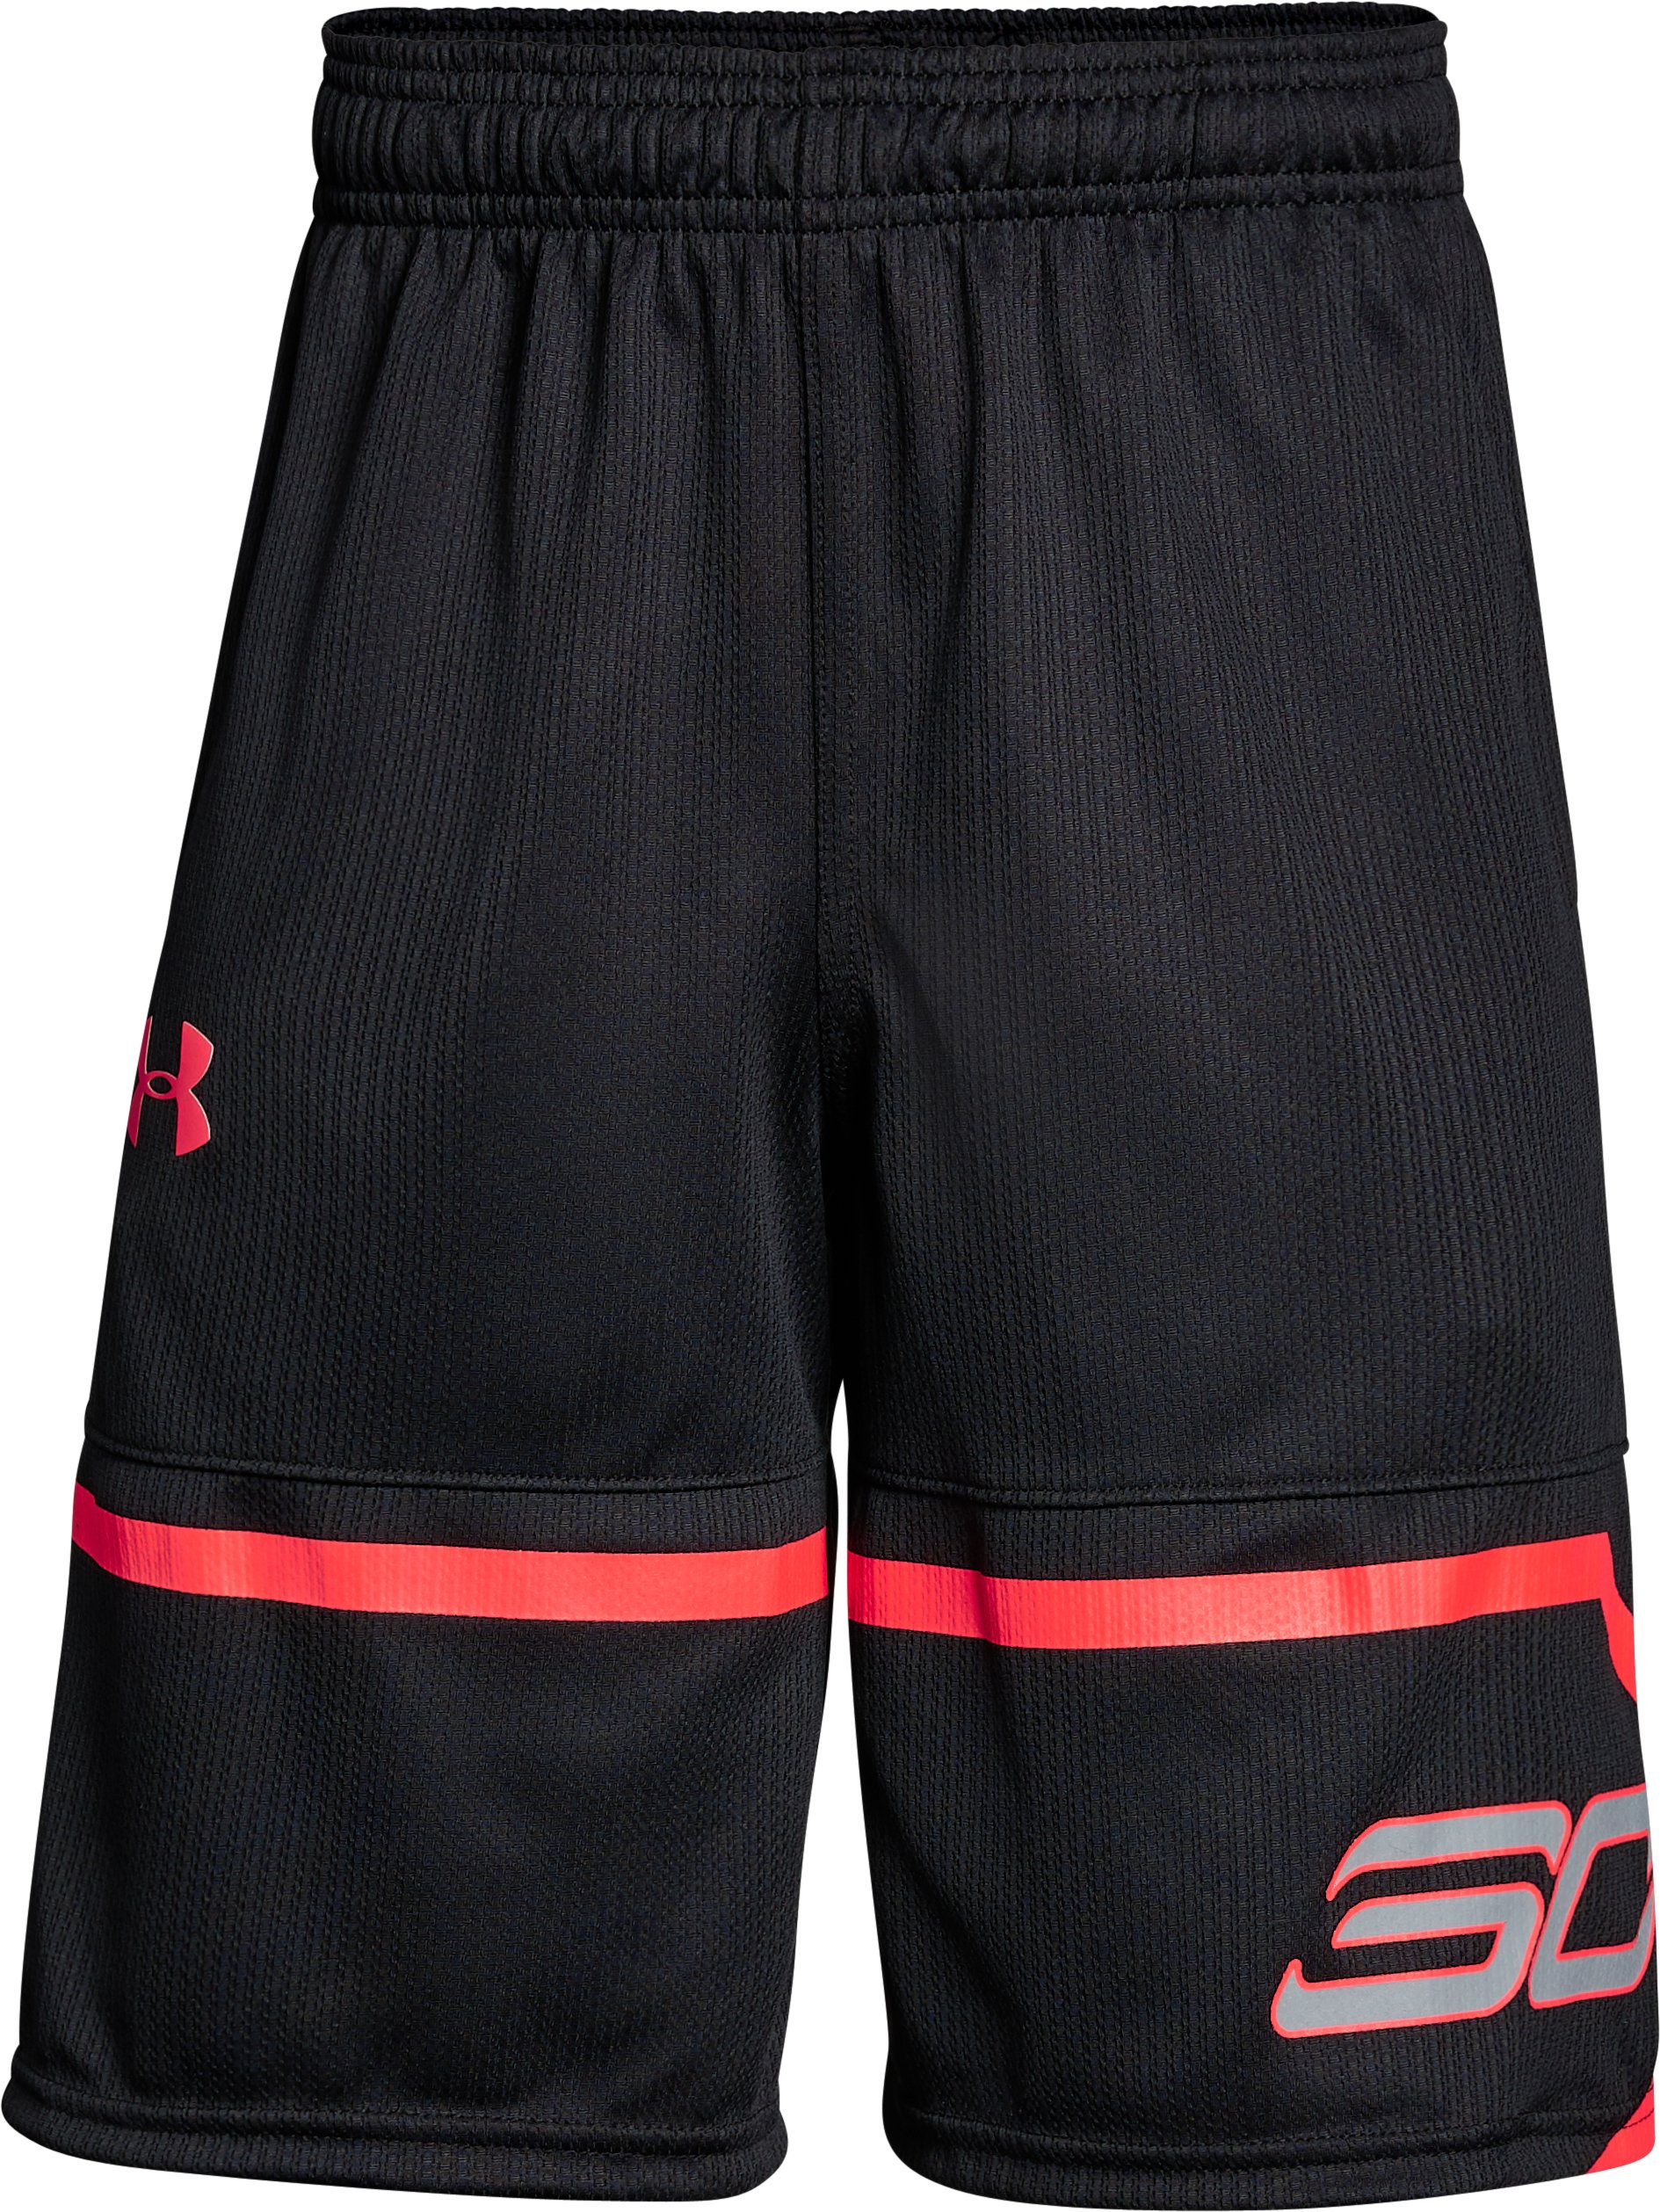 Boys' SC30 Spear Shorts, Black , undefined